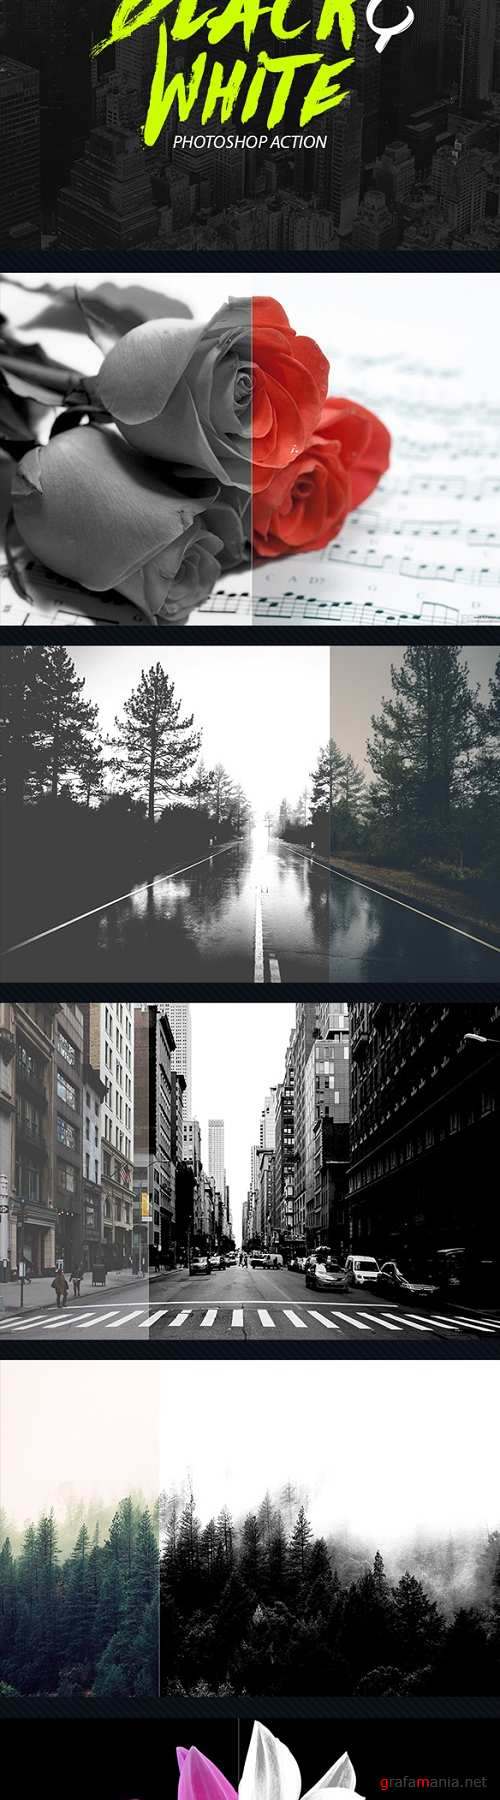 15 Black And White Photoshop Actions 20431872